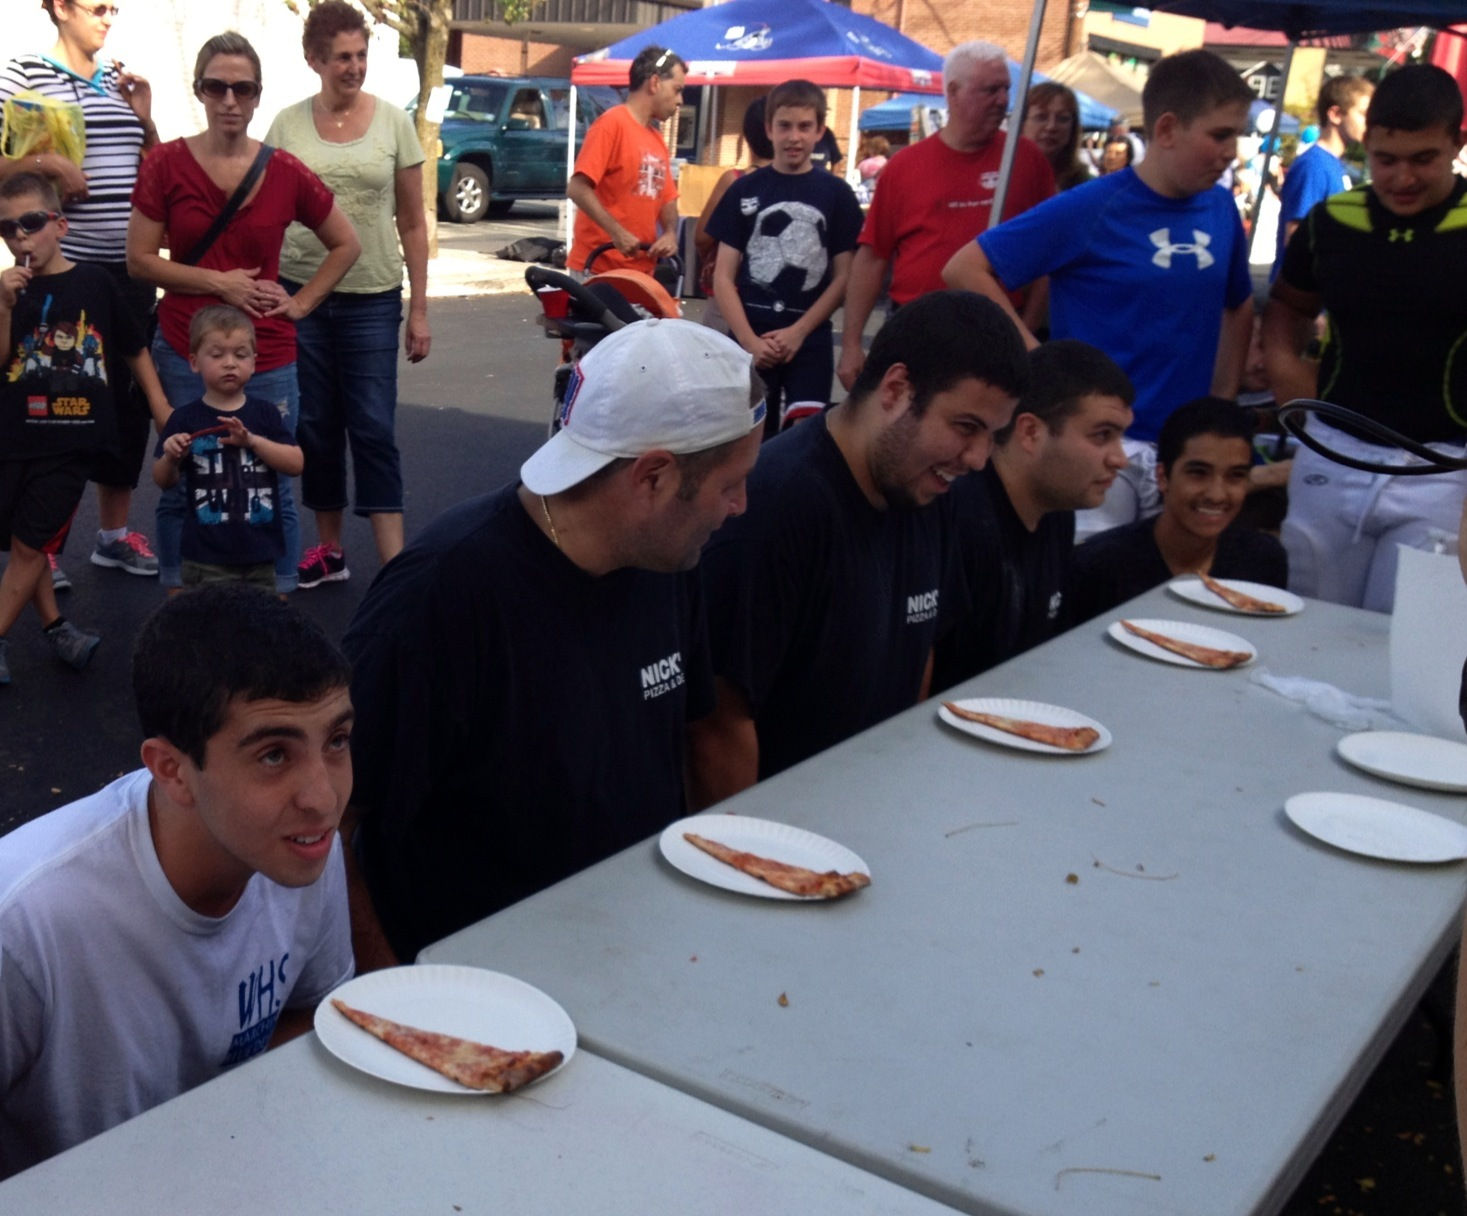 0929416964dda79d8869_Pizza_Eating_contest.jpg